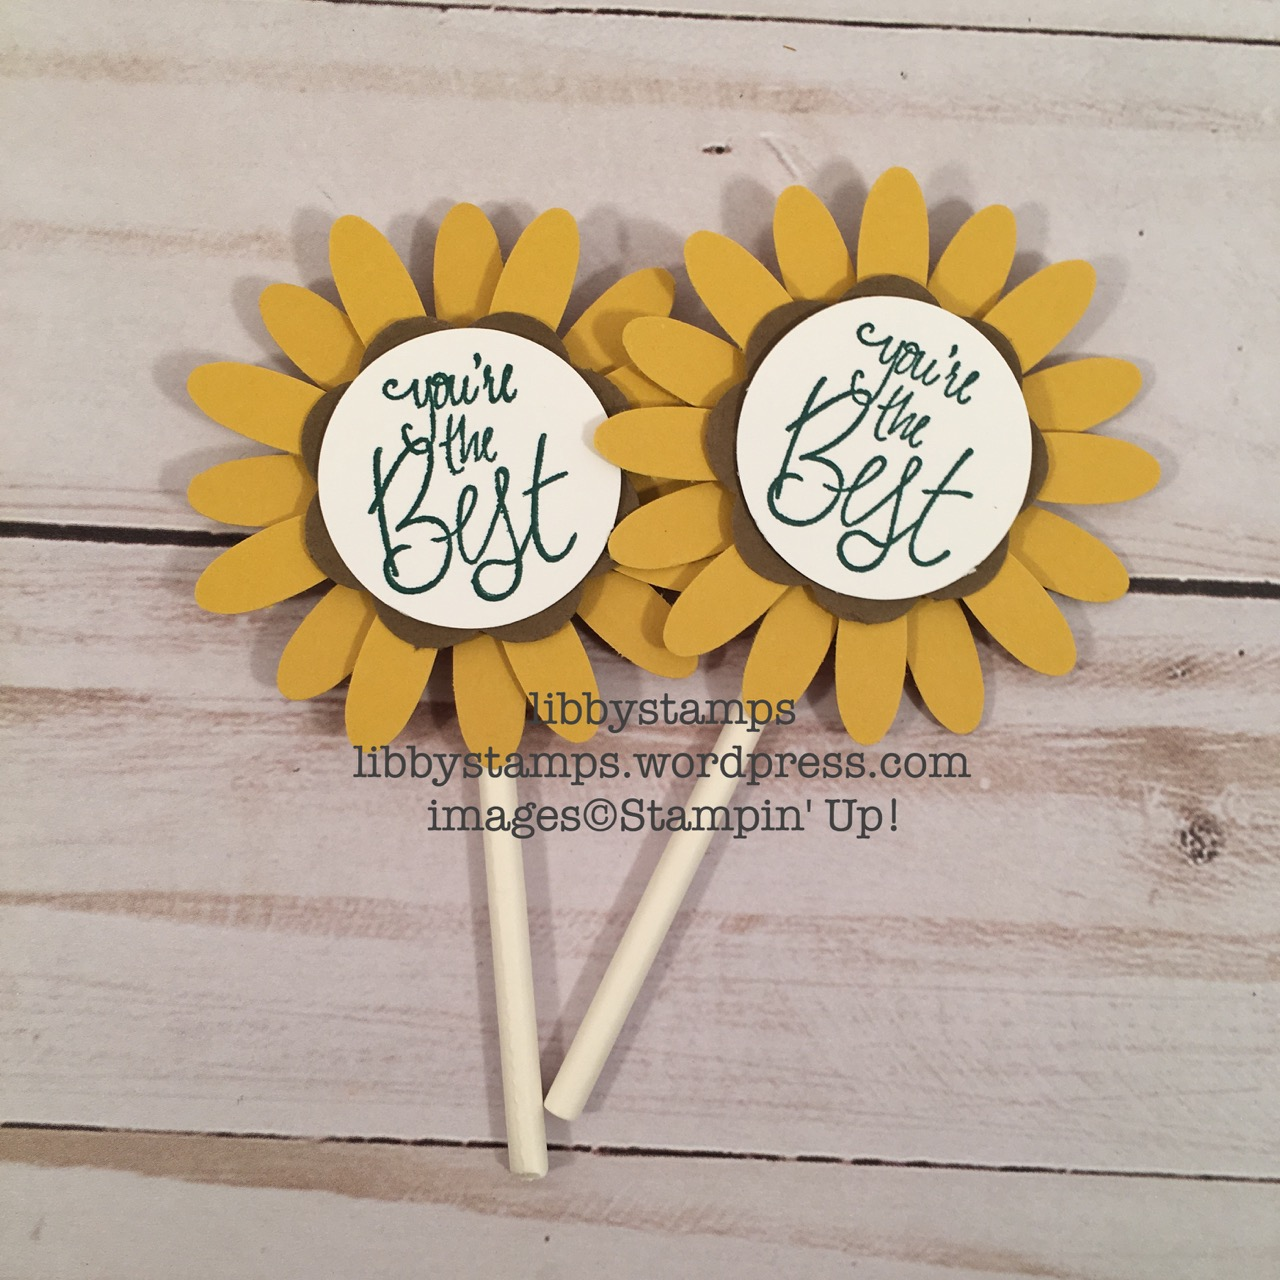 libbystamps, stampin up, Daisy Punch, Label Me Pretty, sunflower, card candy